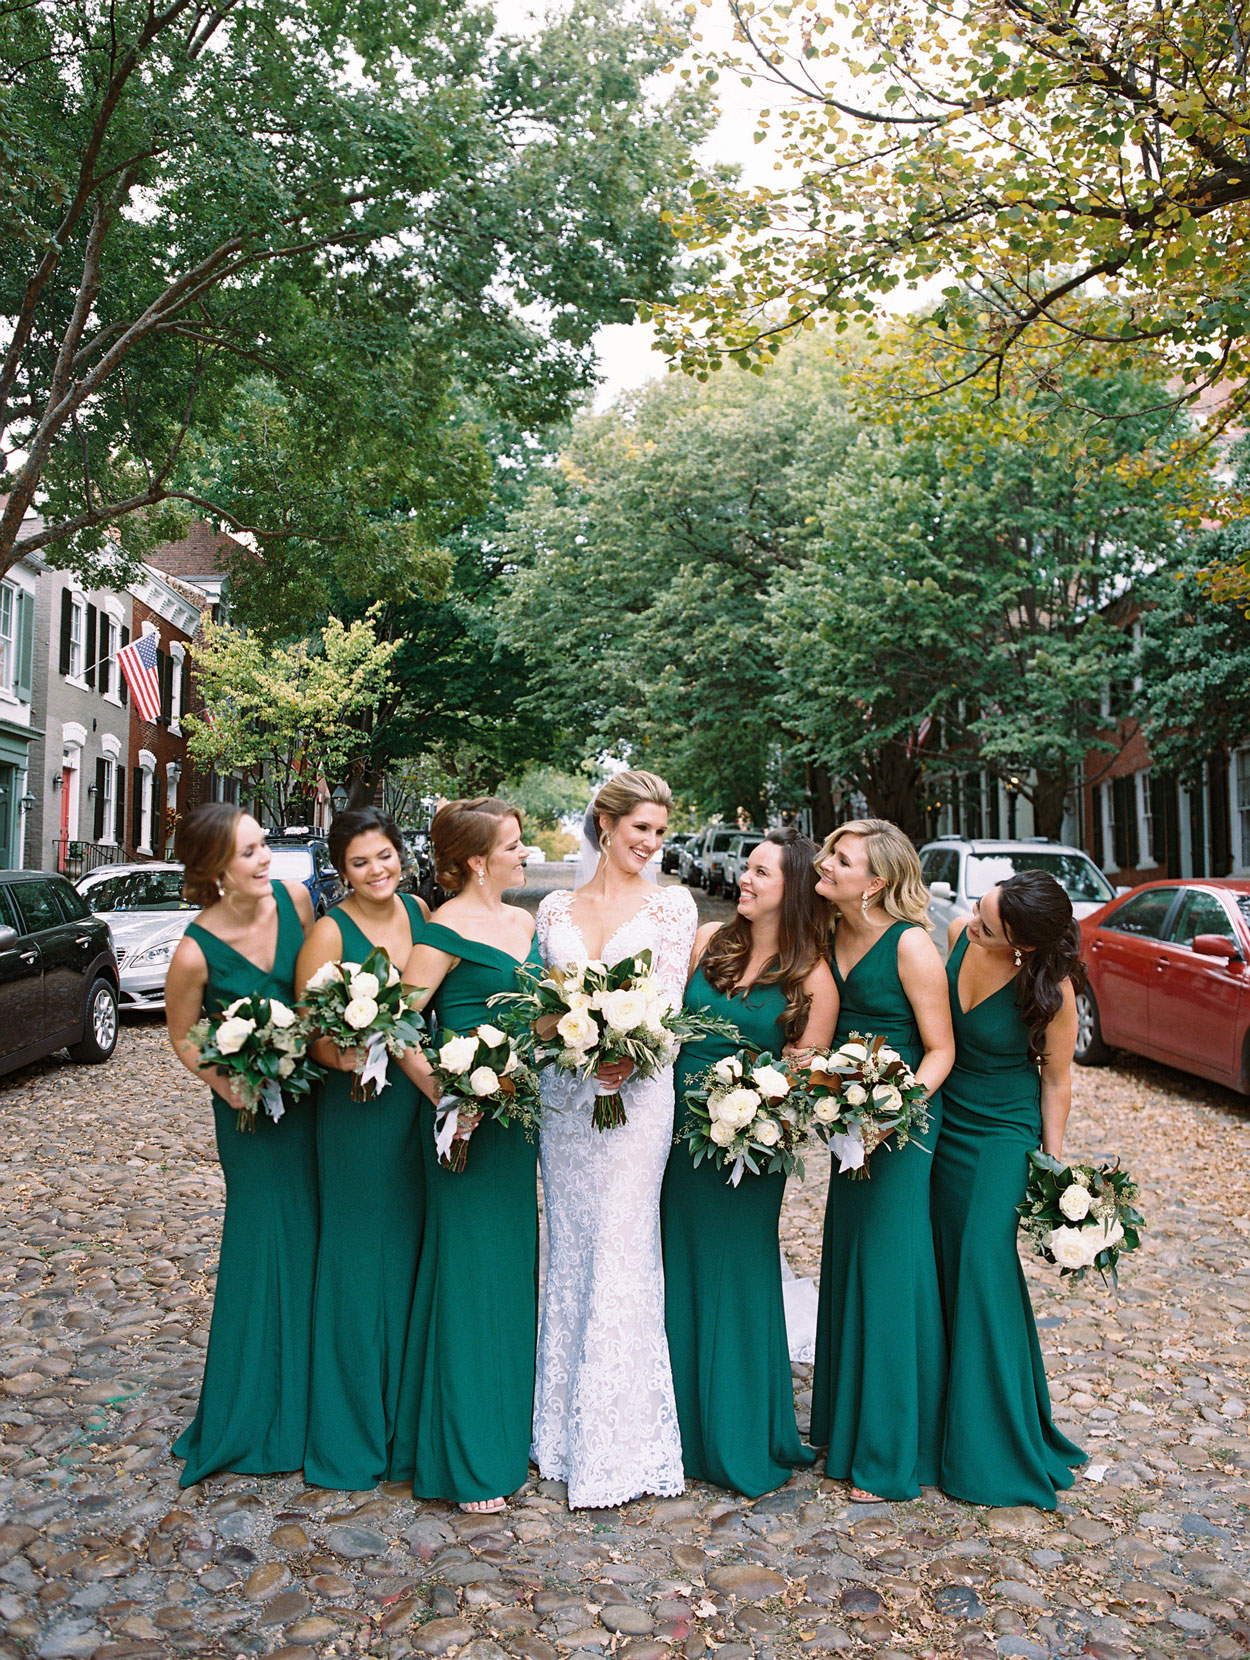 bride with bridesmaids in green dresses